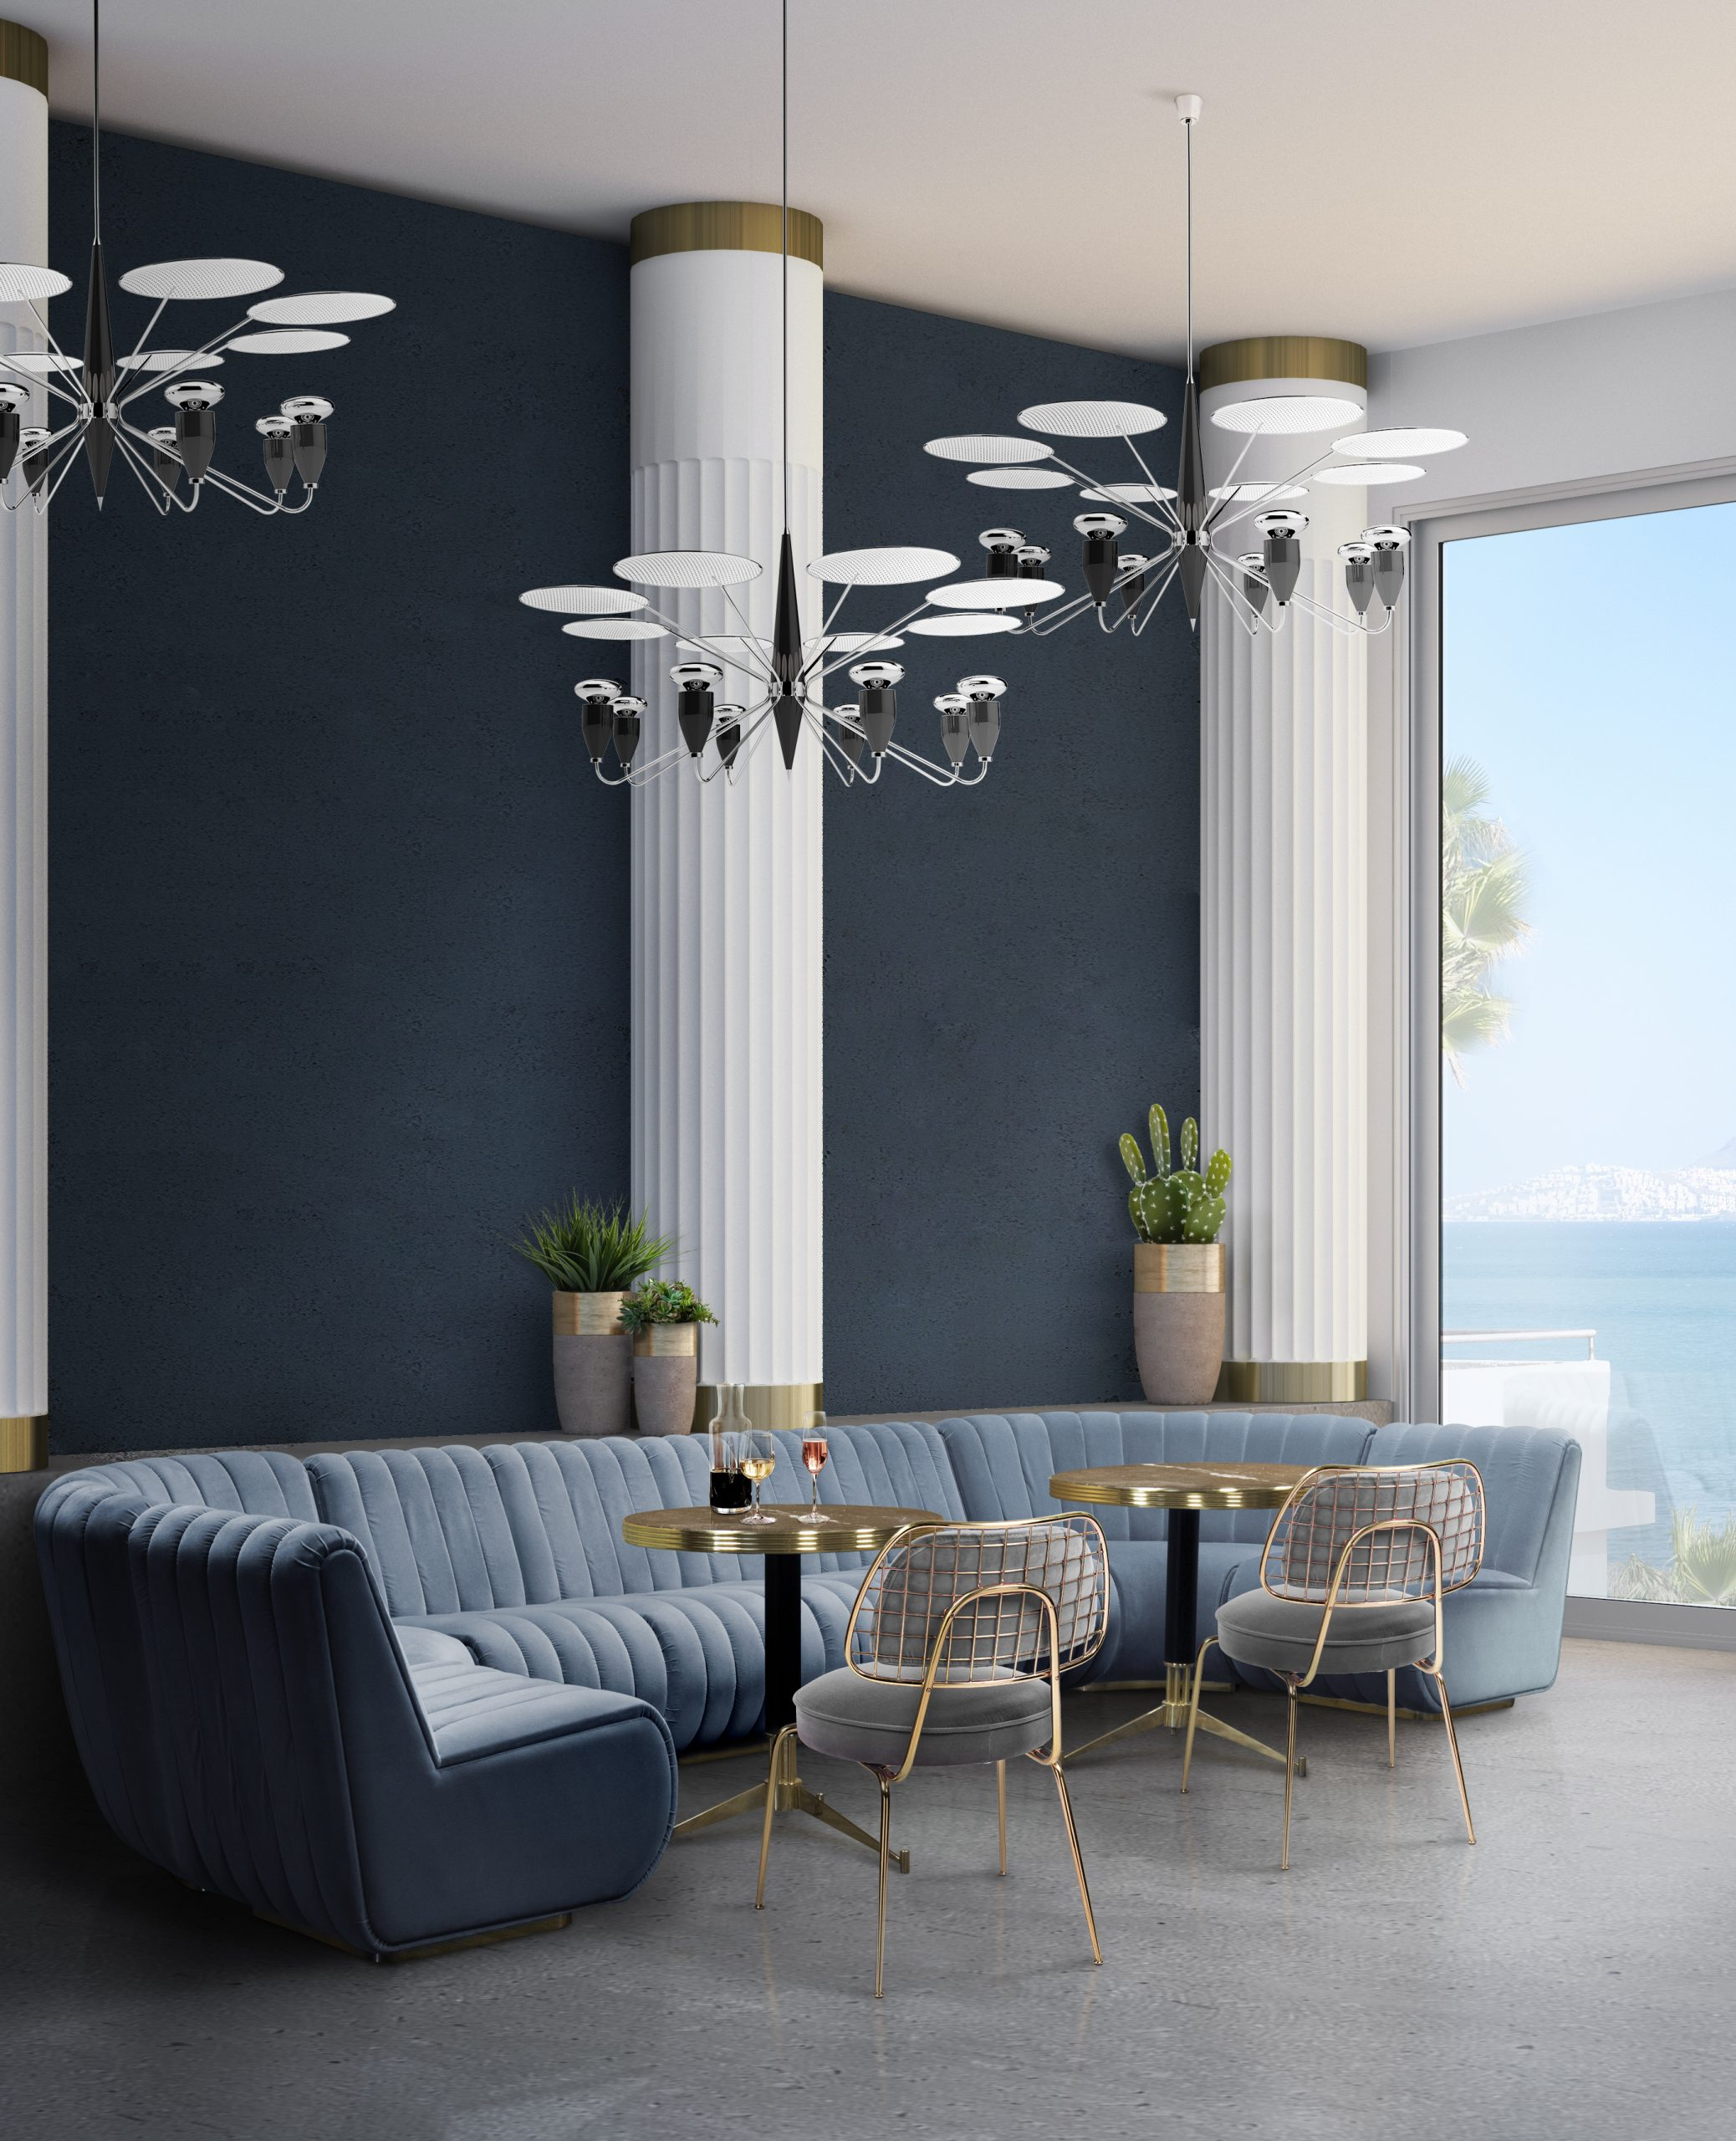 Discover Here the New Trends in America Home Design in 2021! america home design Discover Here the New Trends in America Home Design in 2021! jewel scaled